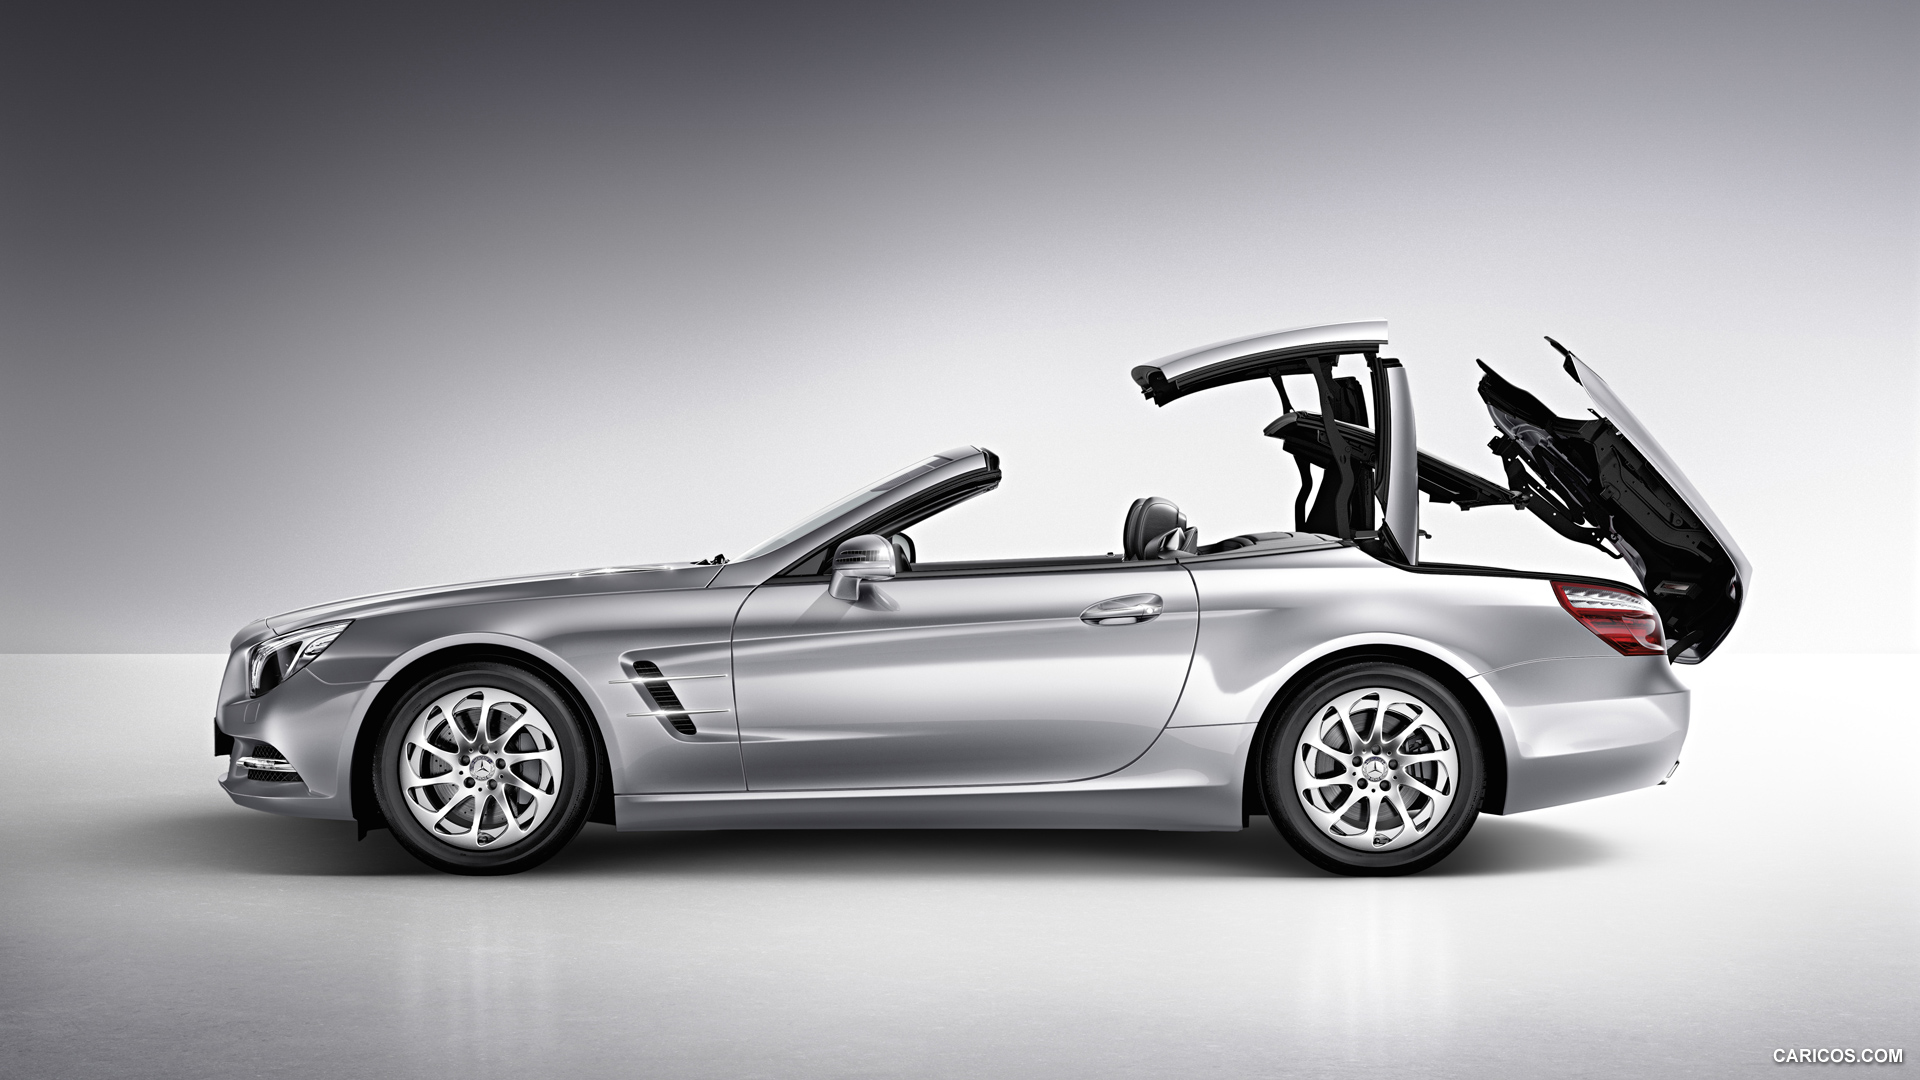 2013 mercedes benz sl class image 6. Black Bedroom Furniture Sets. Home Design Ideas